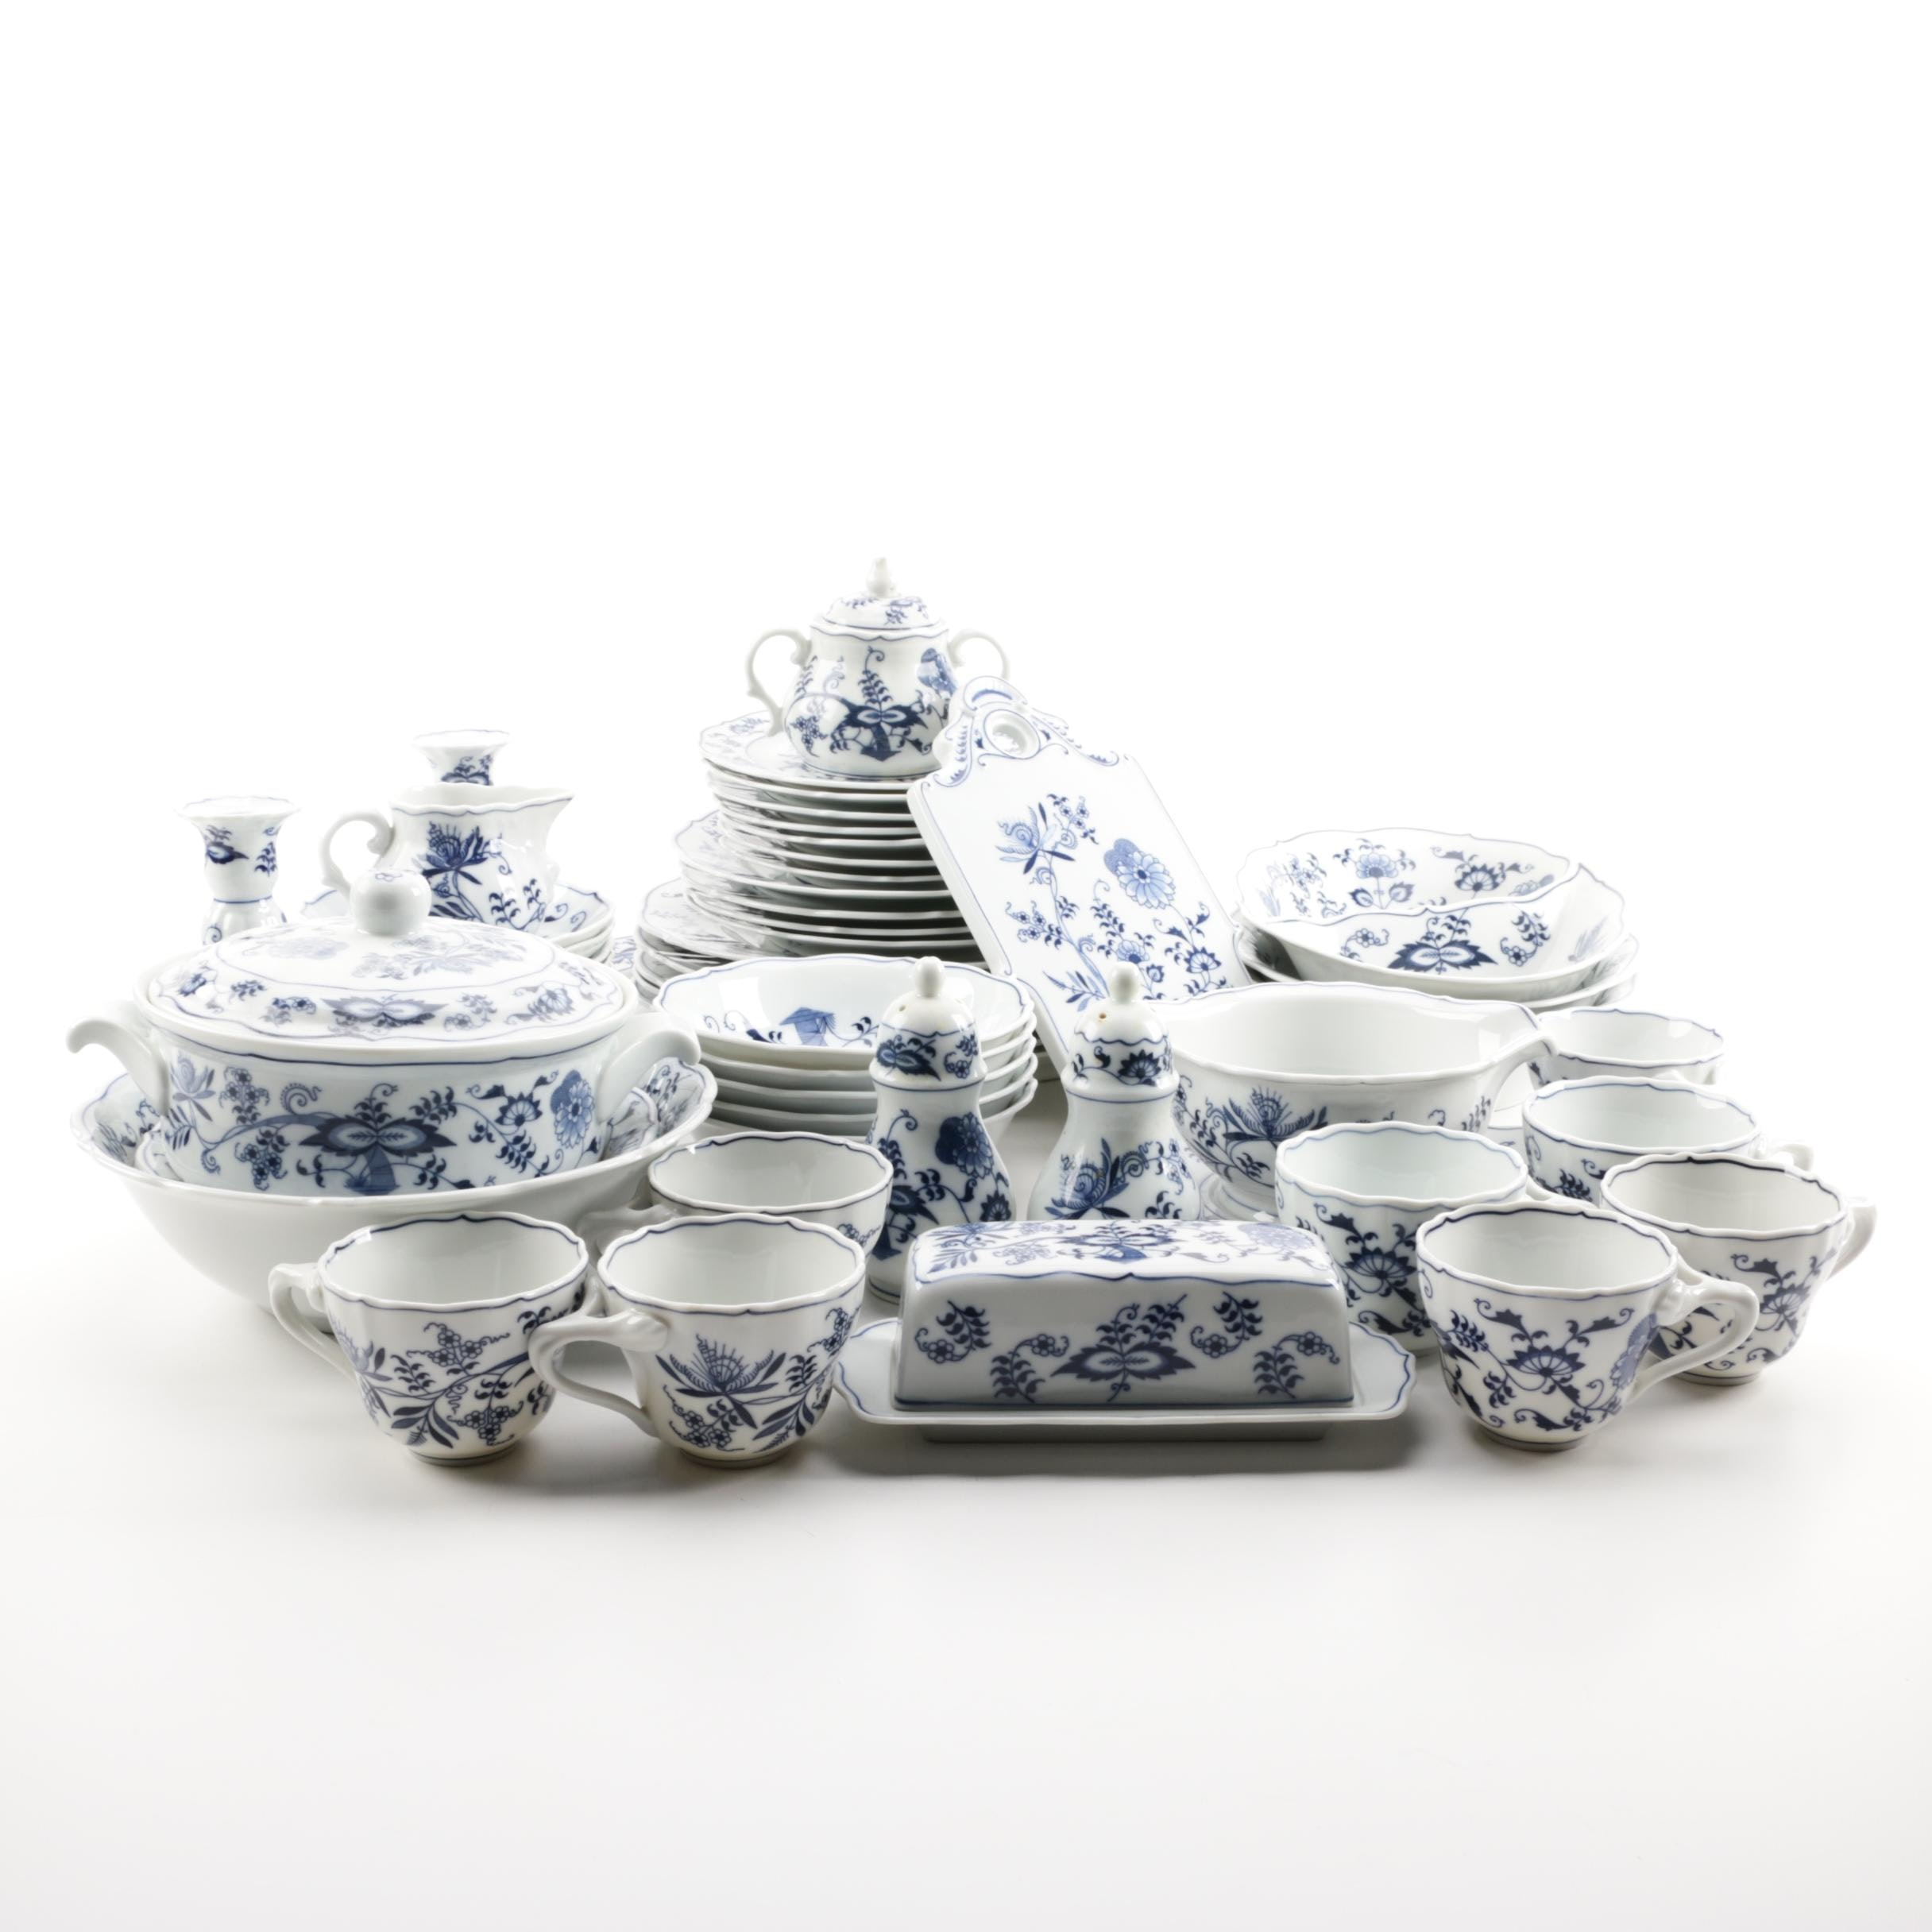 Blue Danube Porcelain Tableware